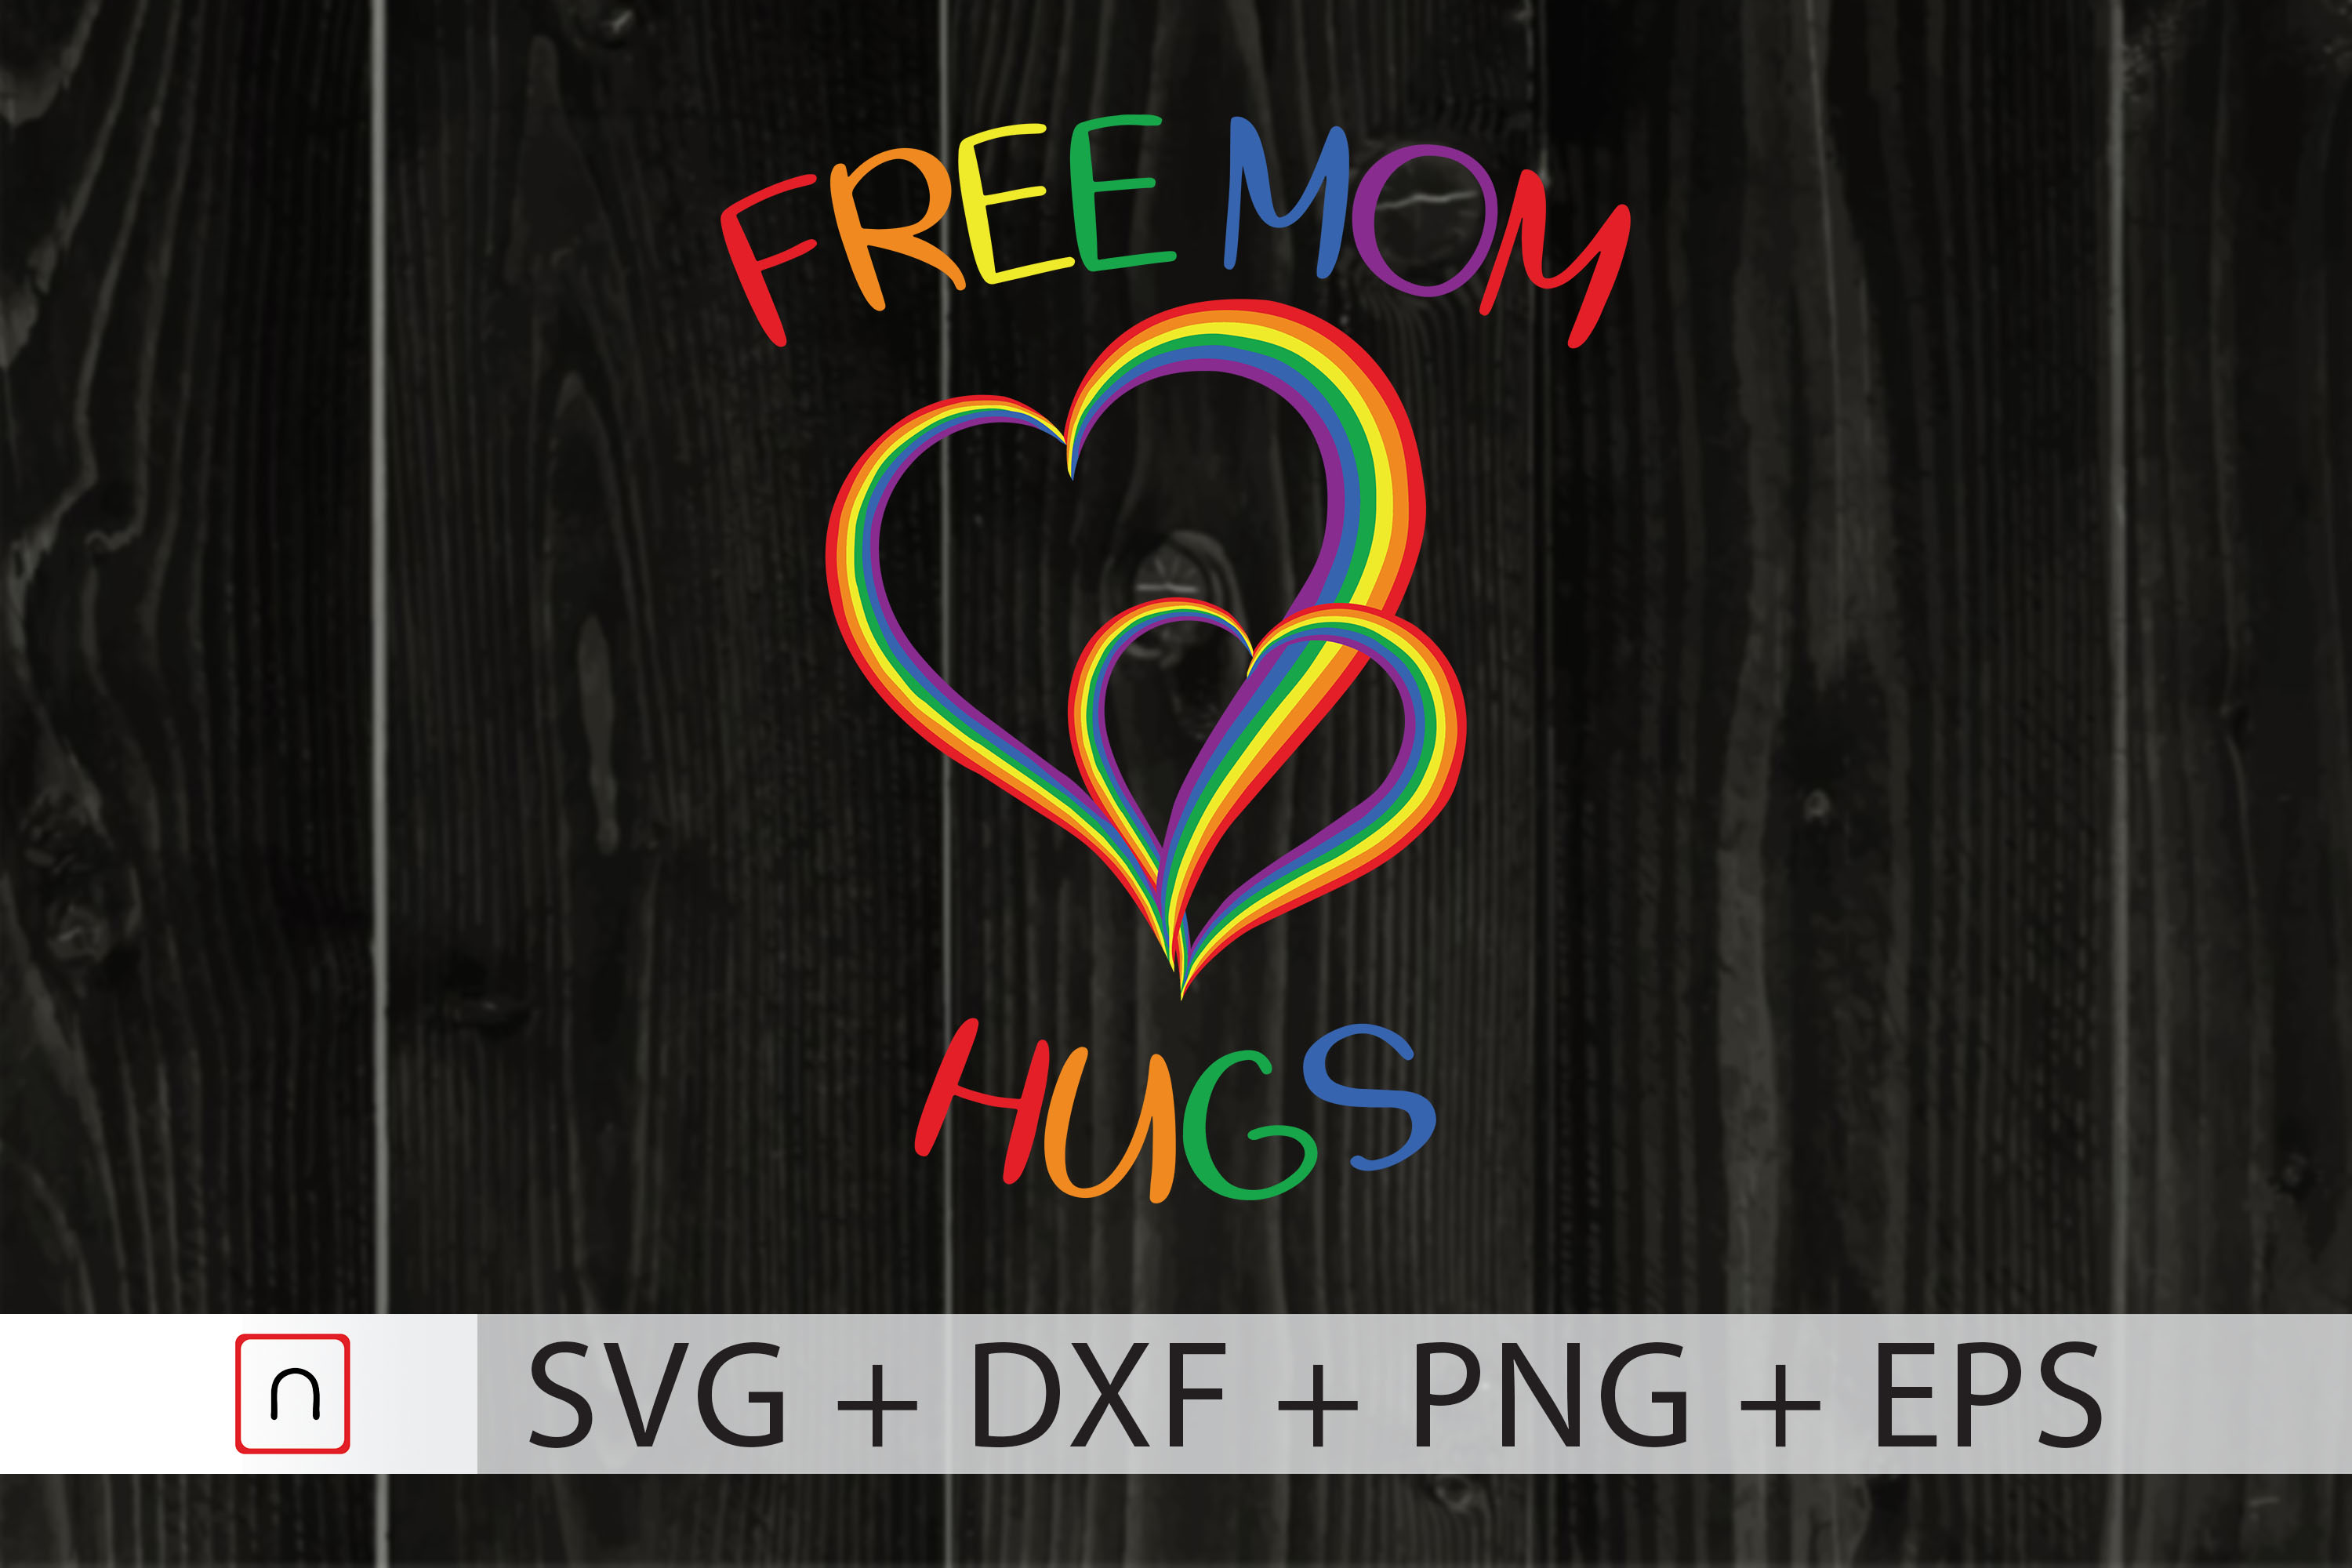 Download Free Free Mom Hugs Rainbow Heart Lgbtq Graphic By Novalia Creative for Cricut Explore, Silhouette and other cutting machines.